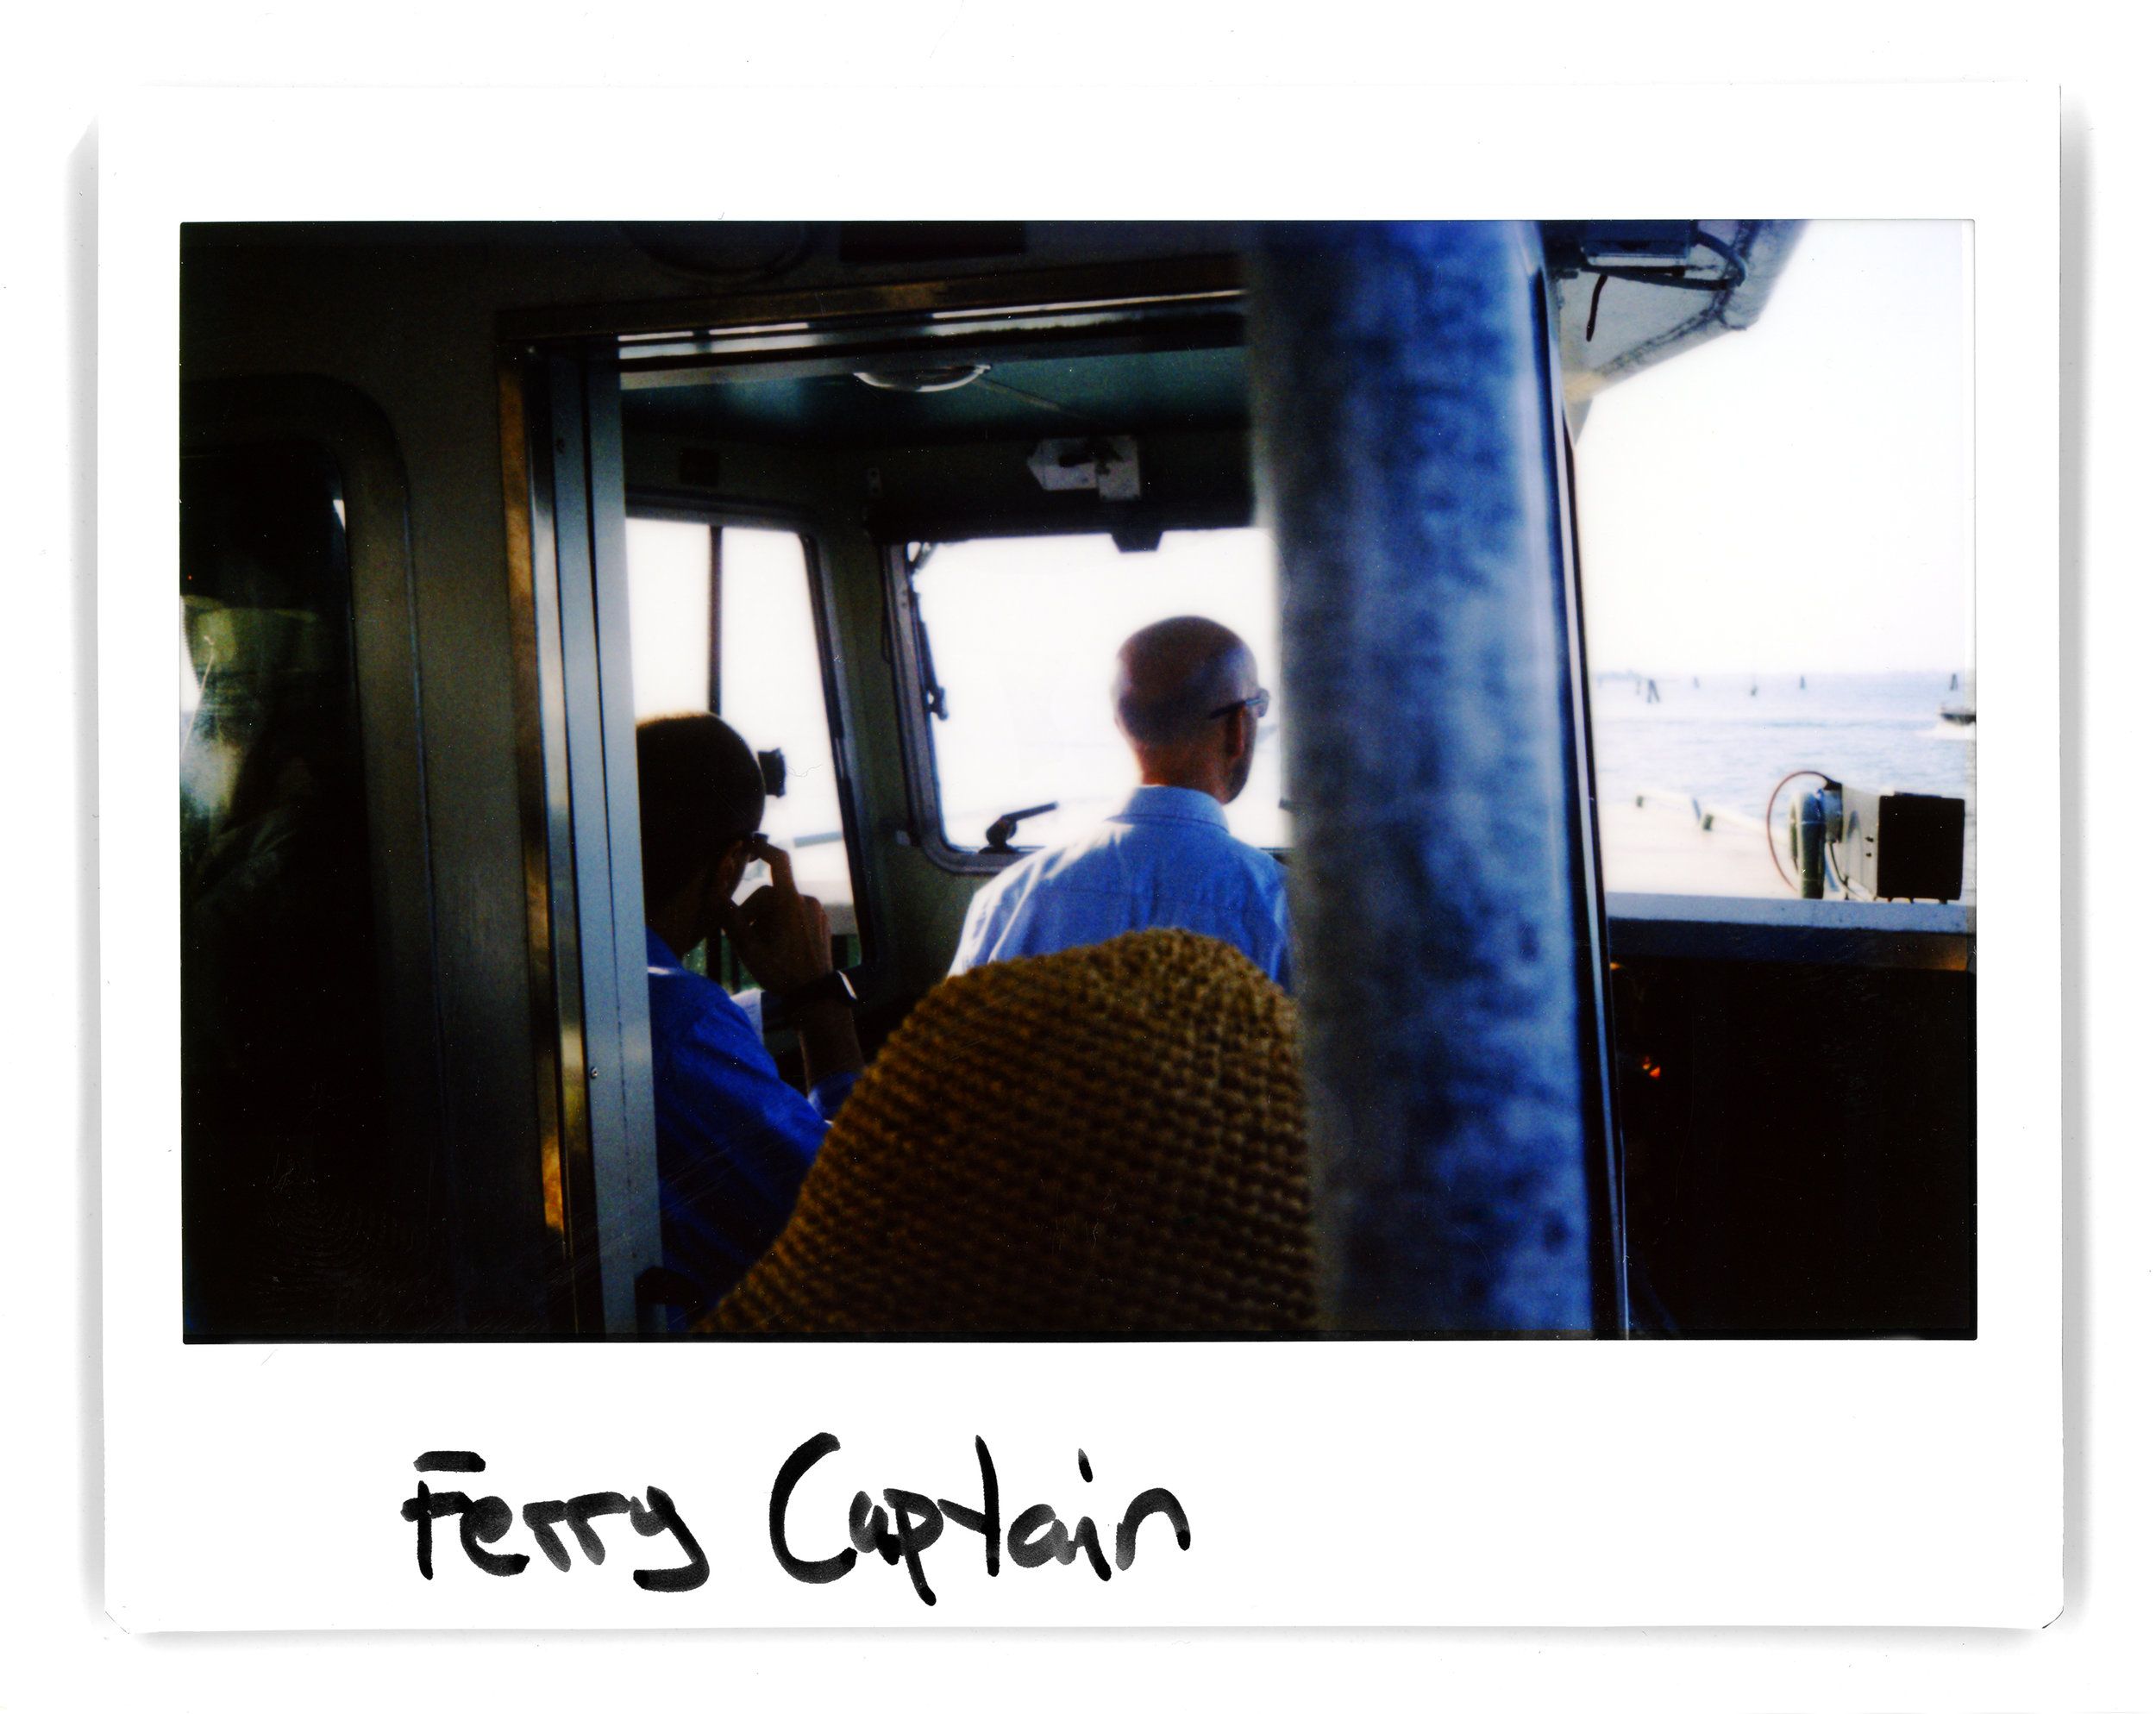 49_Ferry_Captain copy.jpg